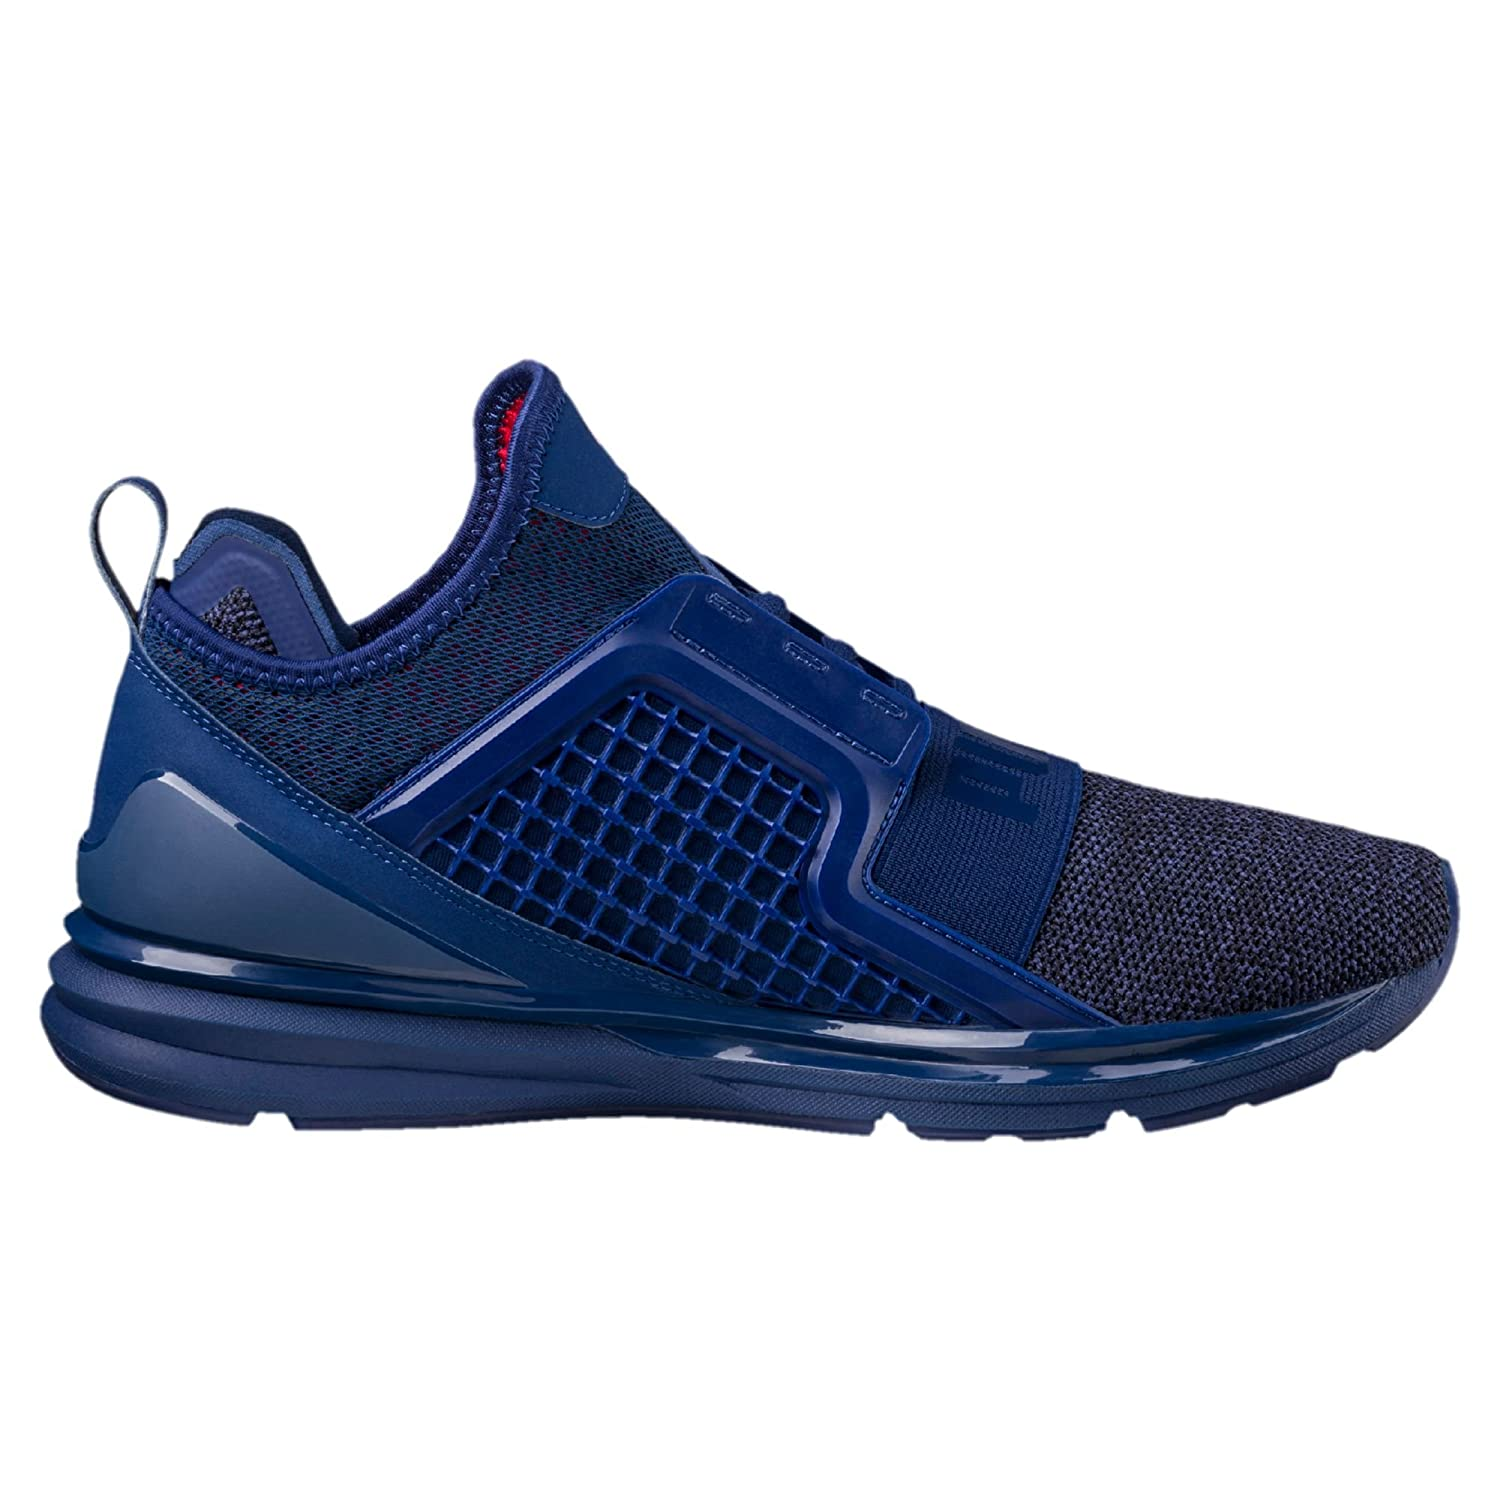 Puma Men s Blue Depths-Toreador Running Shoes-10 UK India (44.5 EU)  (4057828151403)  Buy Online at Low Prices in India - Amazon.in bdcb7b4d0